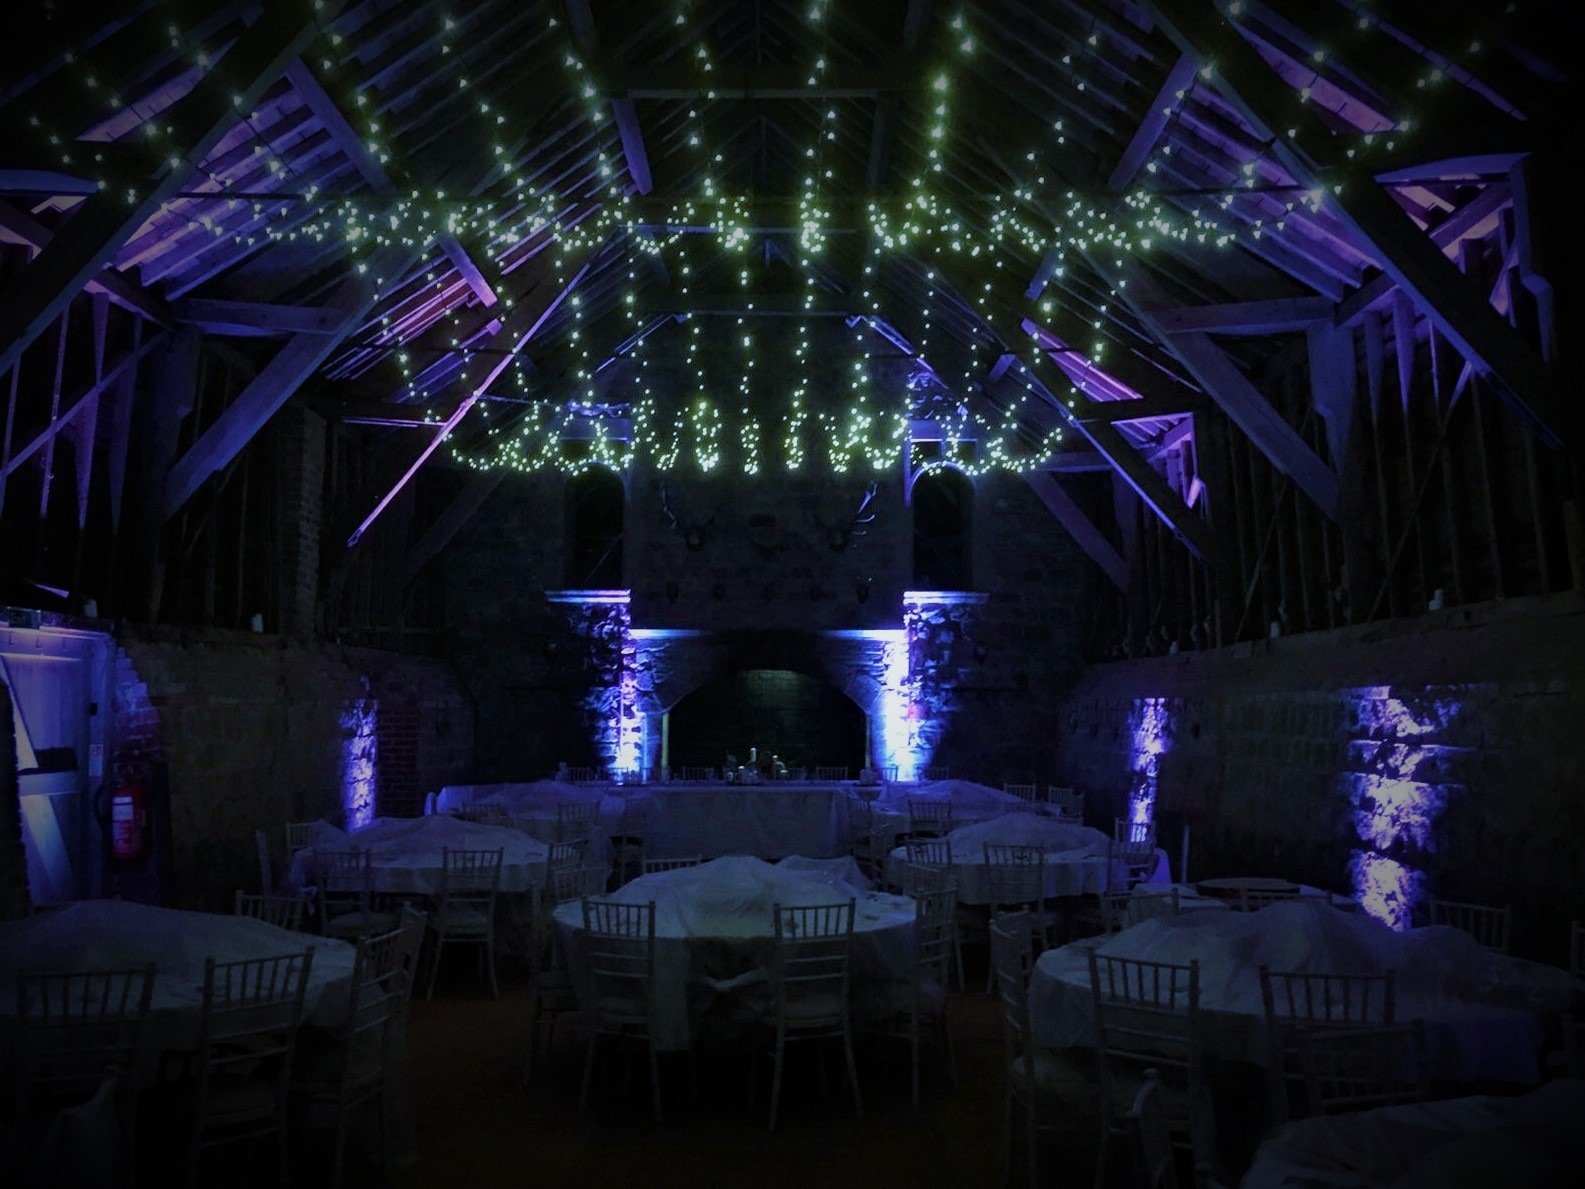 Wick Bottom Barn Fairy Lighting